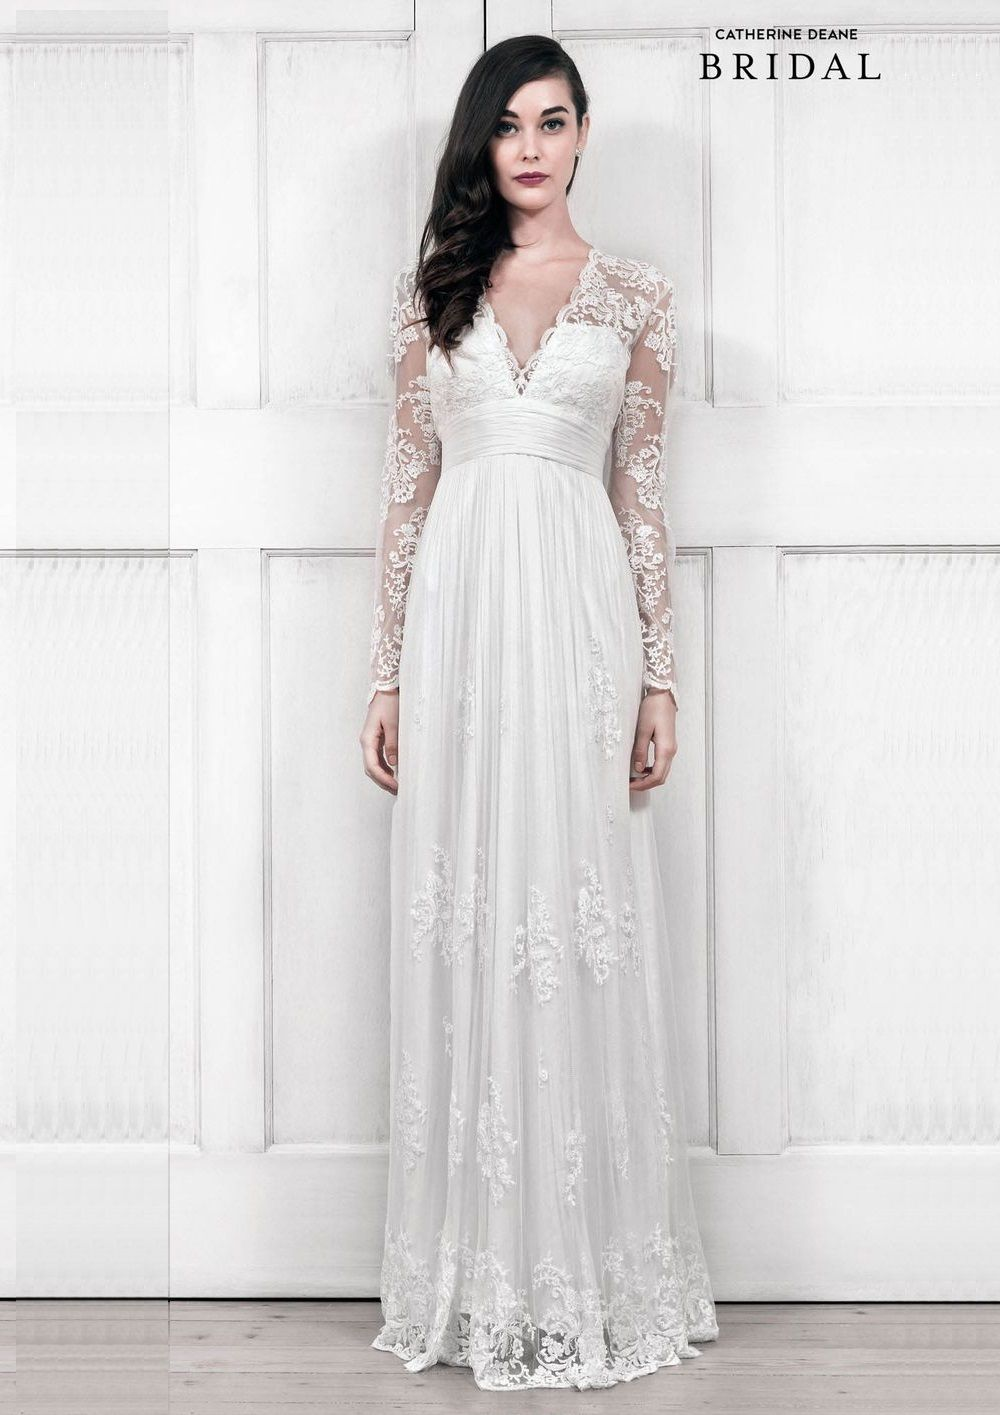 exquisite u elegant long sleeved wedding dresses long sleeved